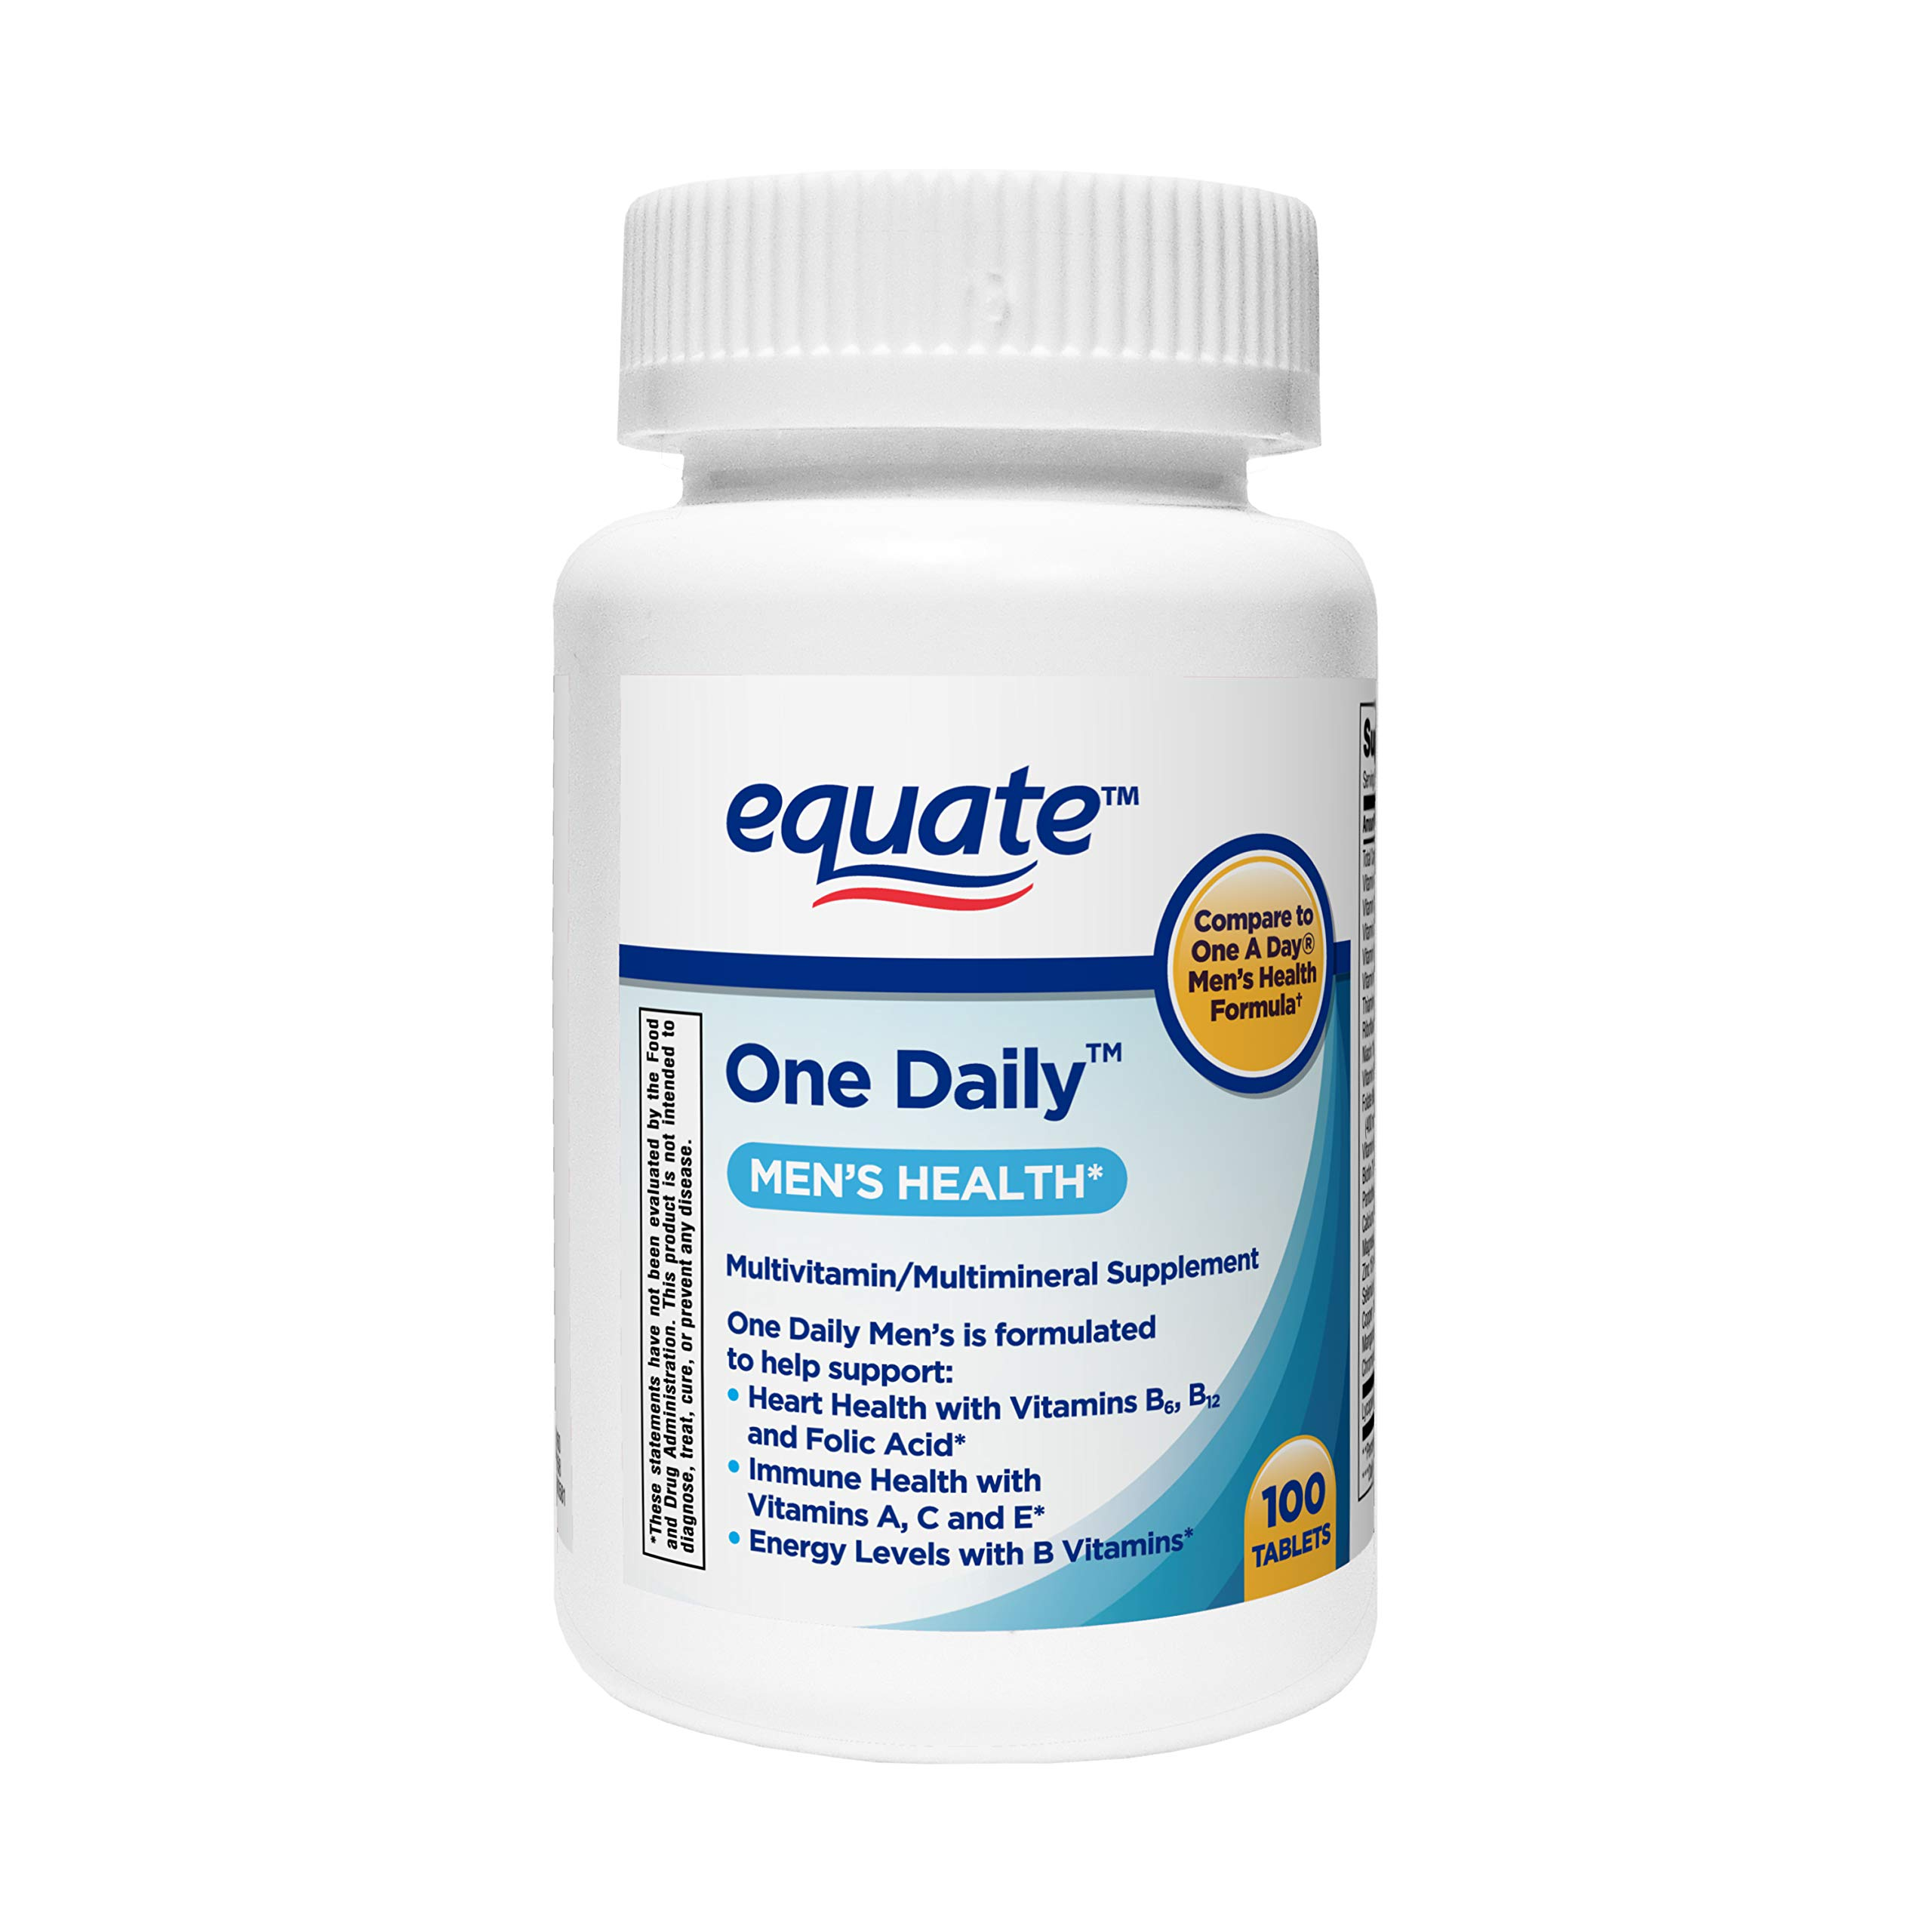 Equate - One Daily Multivitamin, Men's Health Formula, 100 Tablets